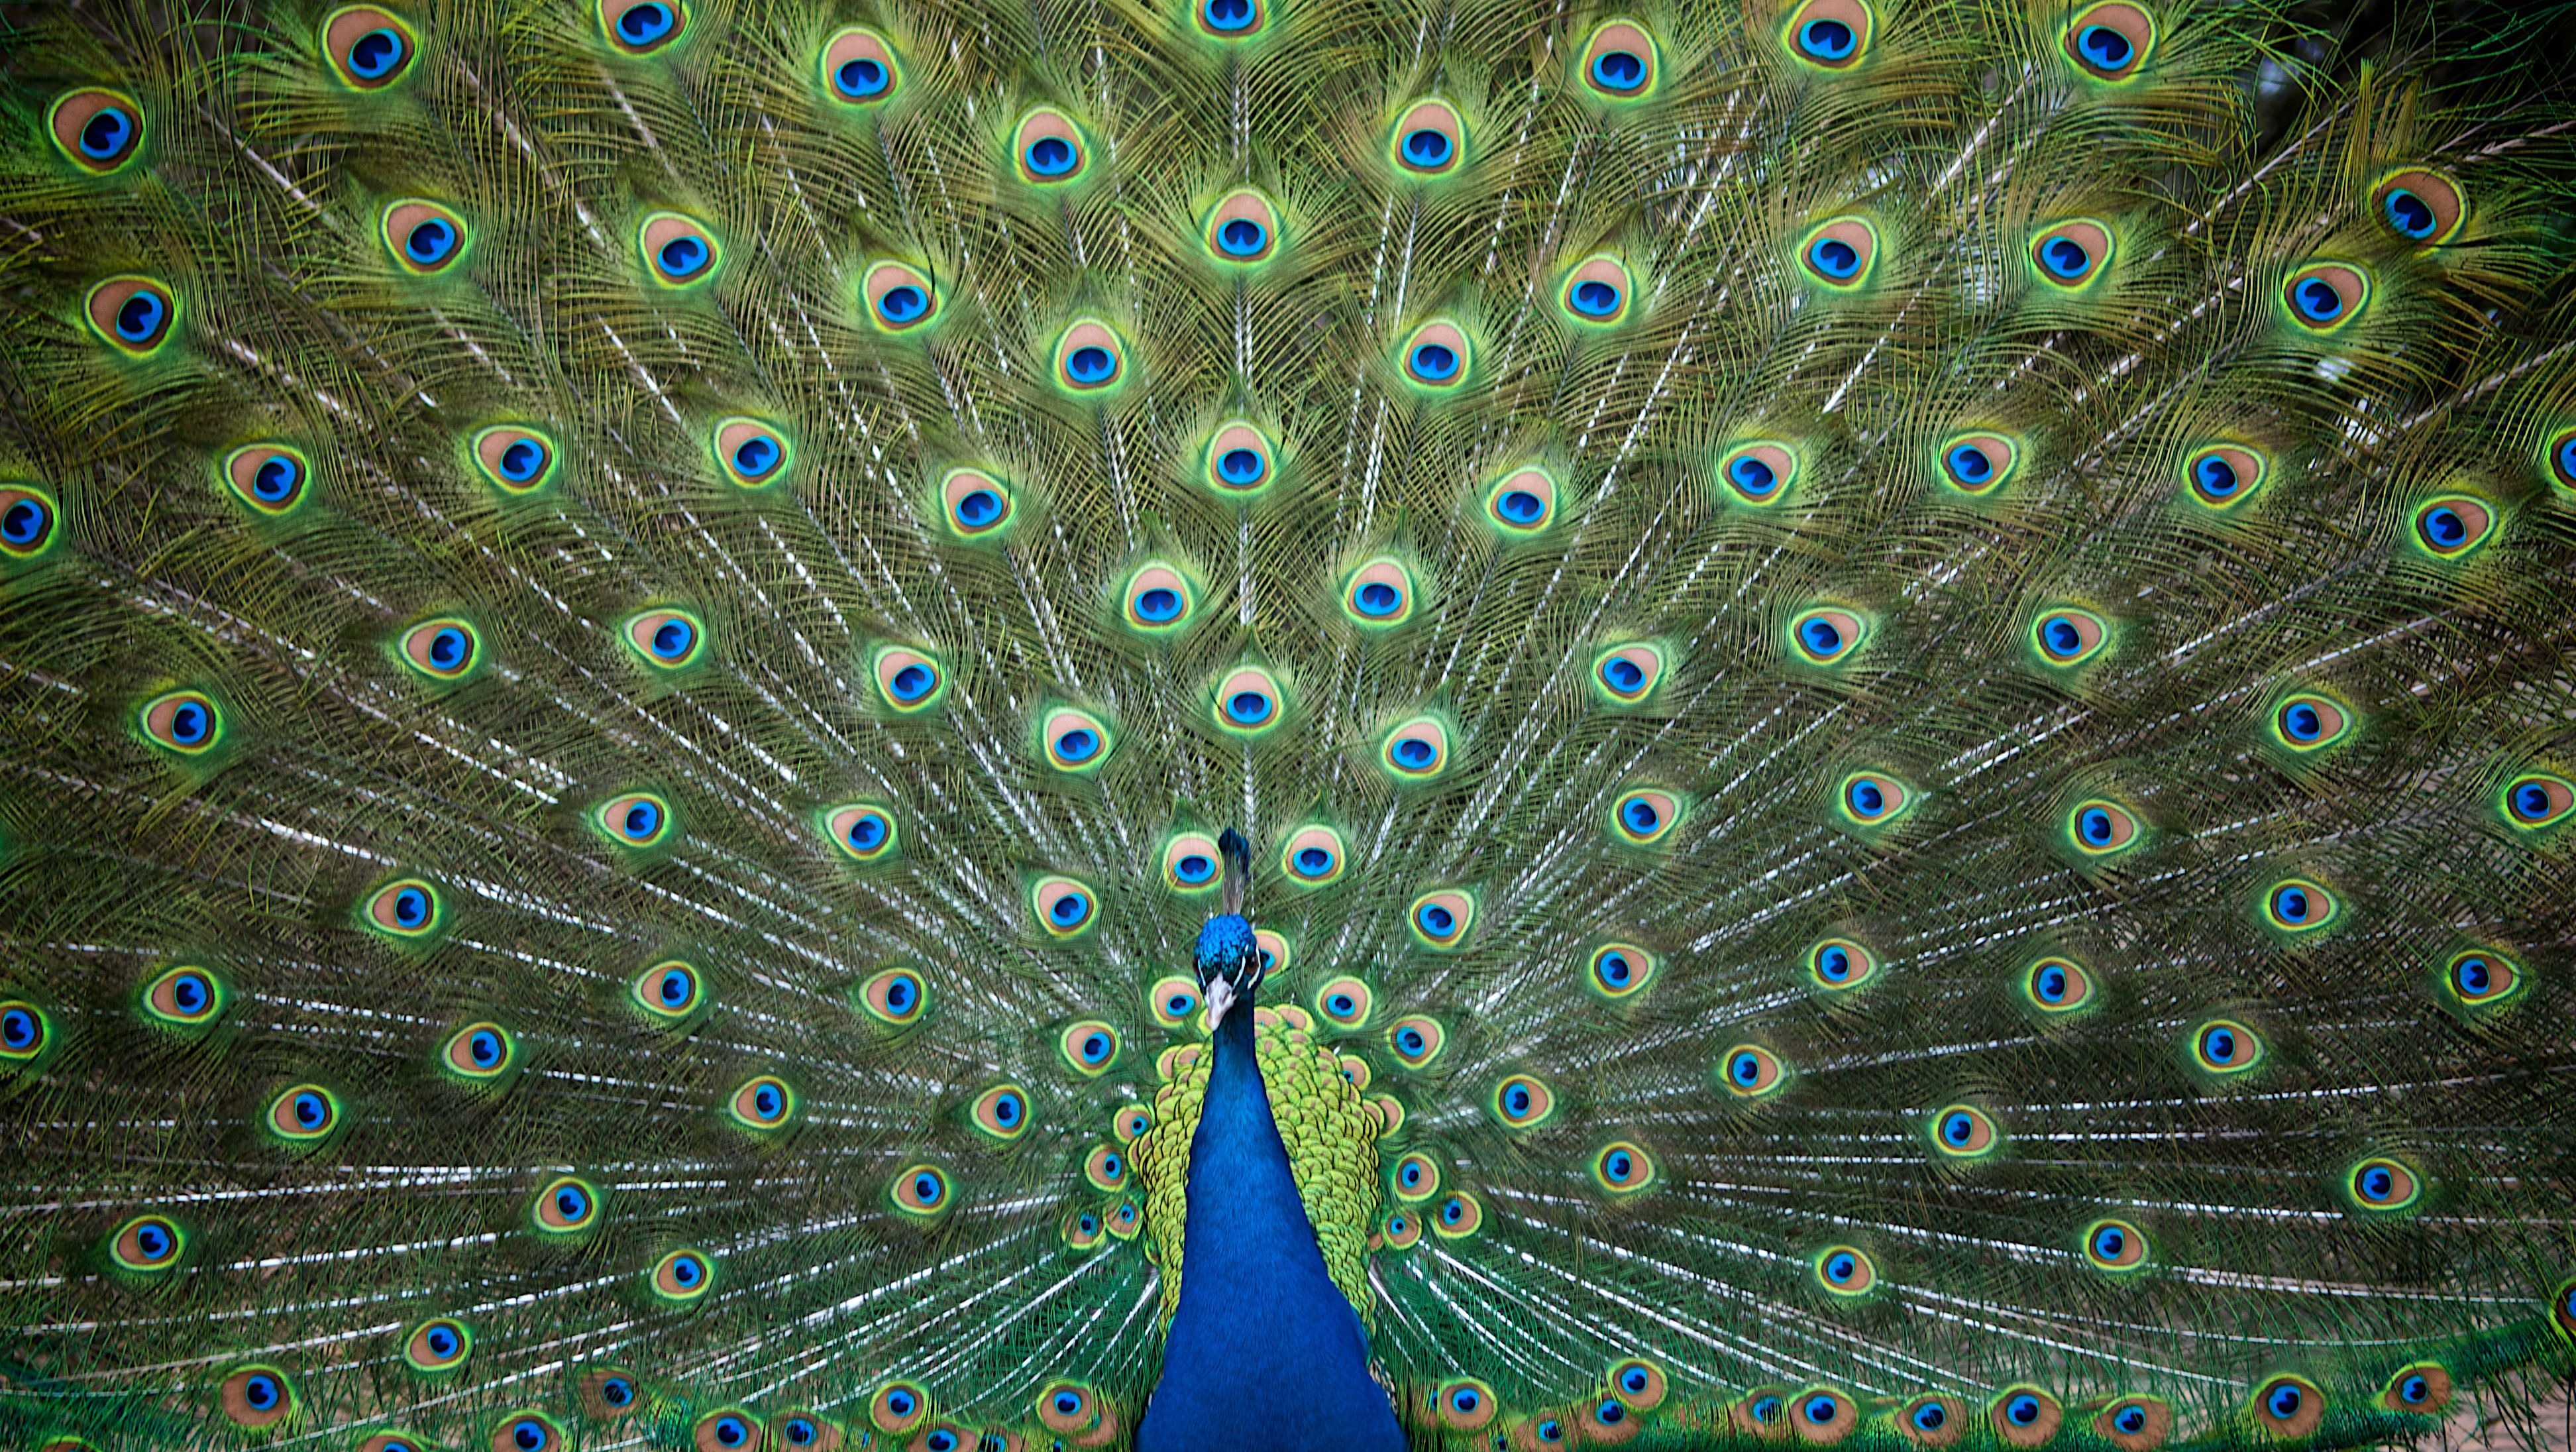 A peacock showing his eyespots